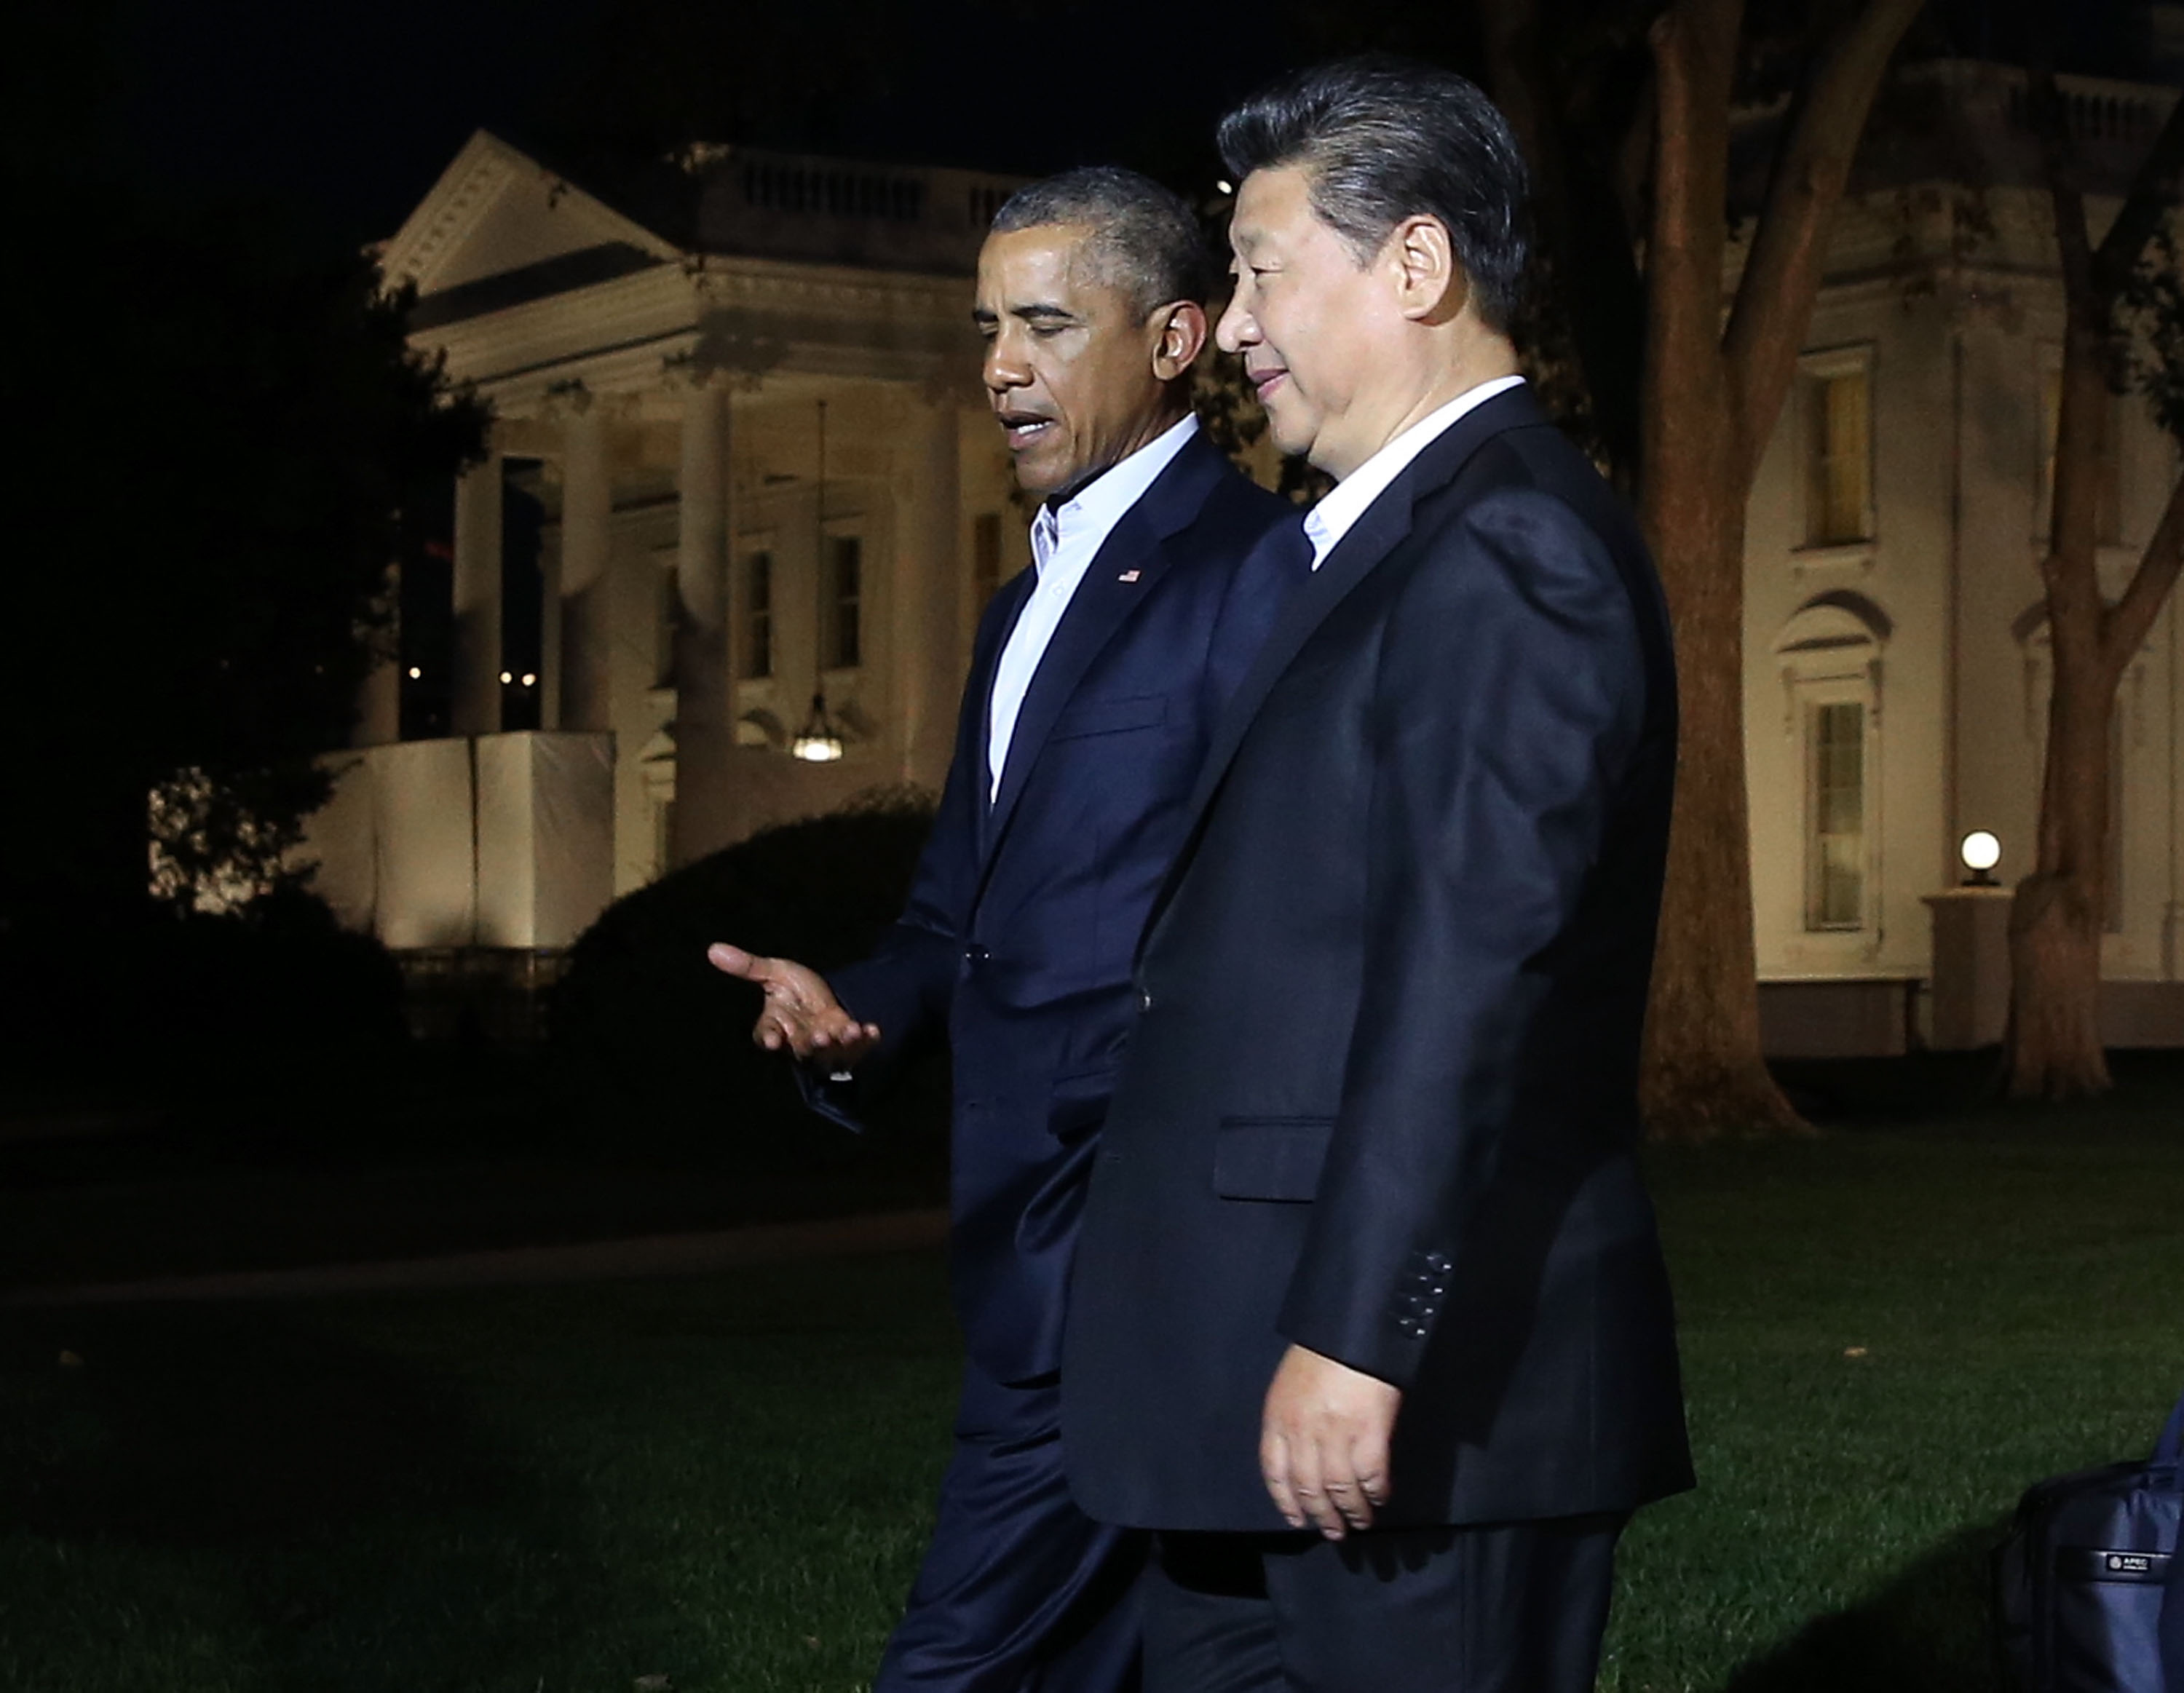 Chinese President Xi Jinping Meets With President Obama At The White House